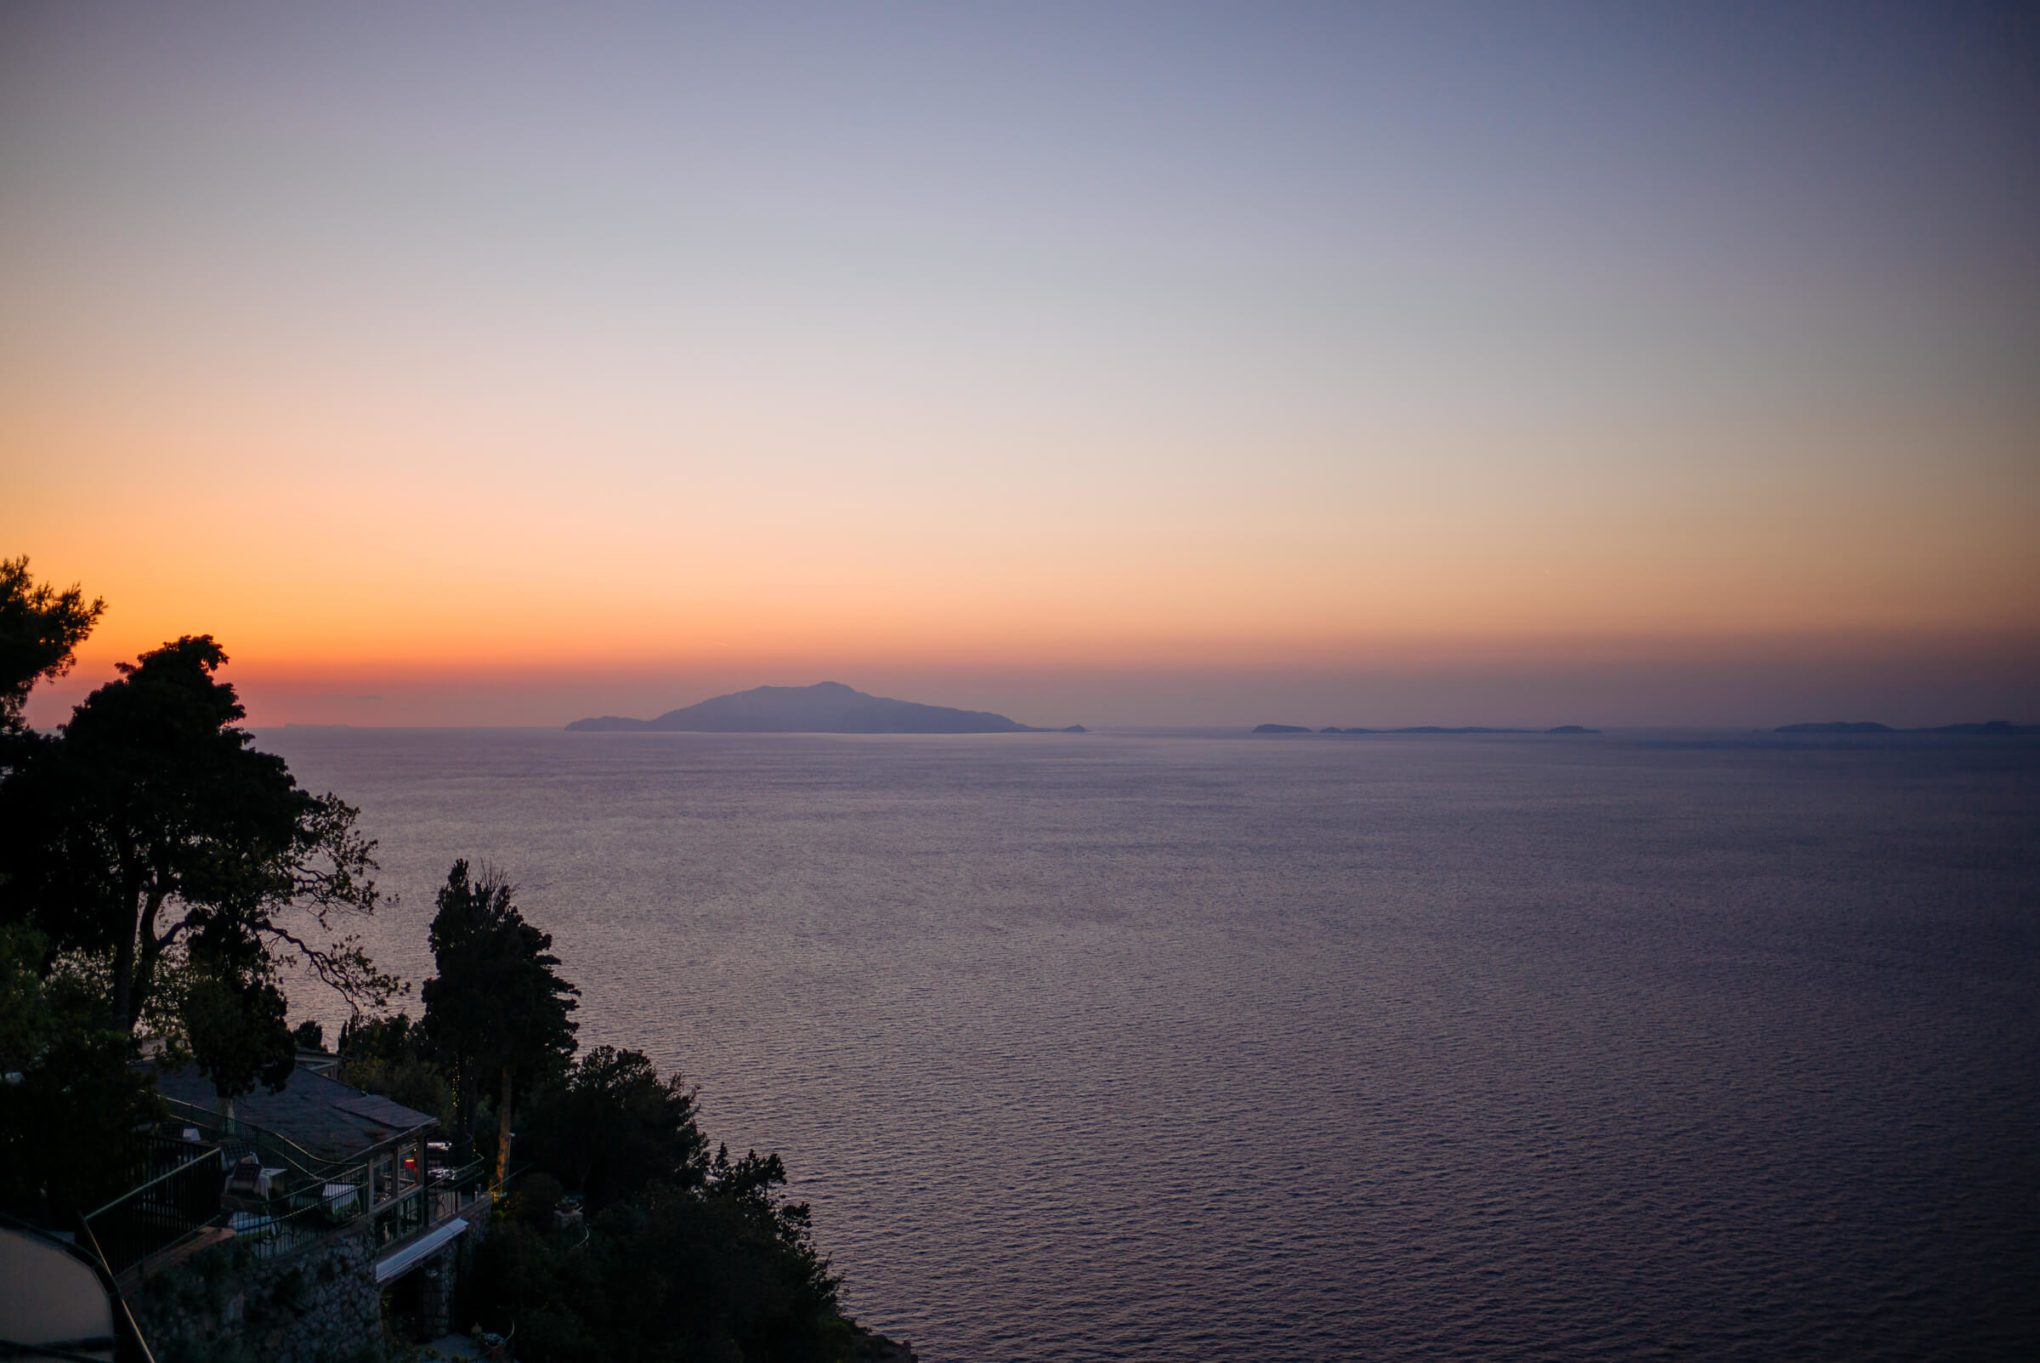 Terrace at Hotel Caesar Augustus in Capri is the perfect place to watch the sunset - says The Taste SF